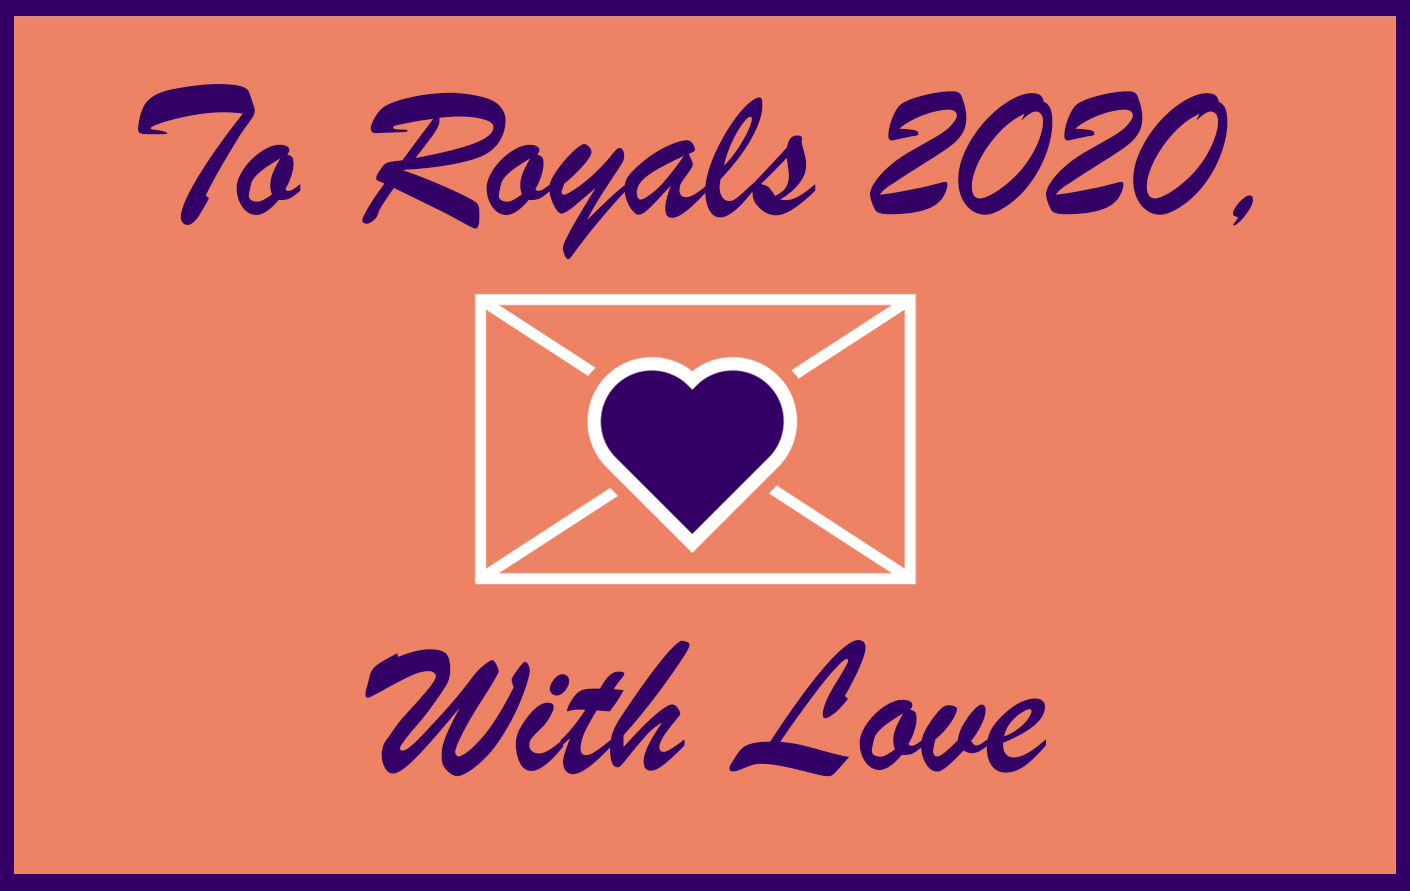 To Royals 2020, with Love